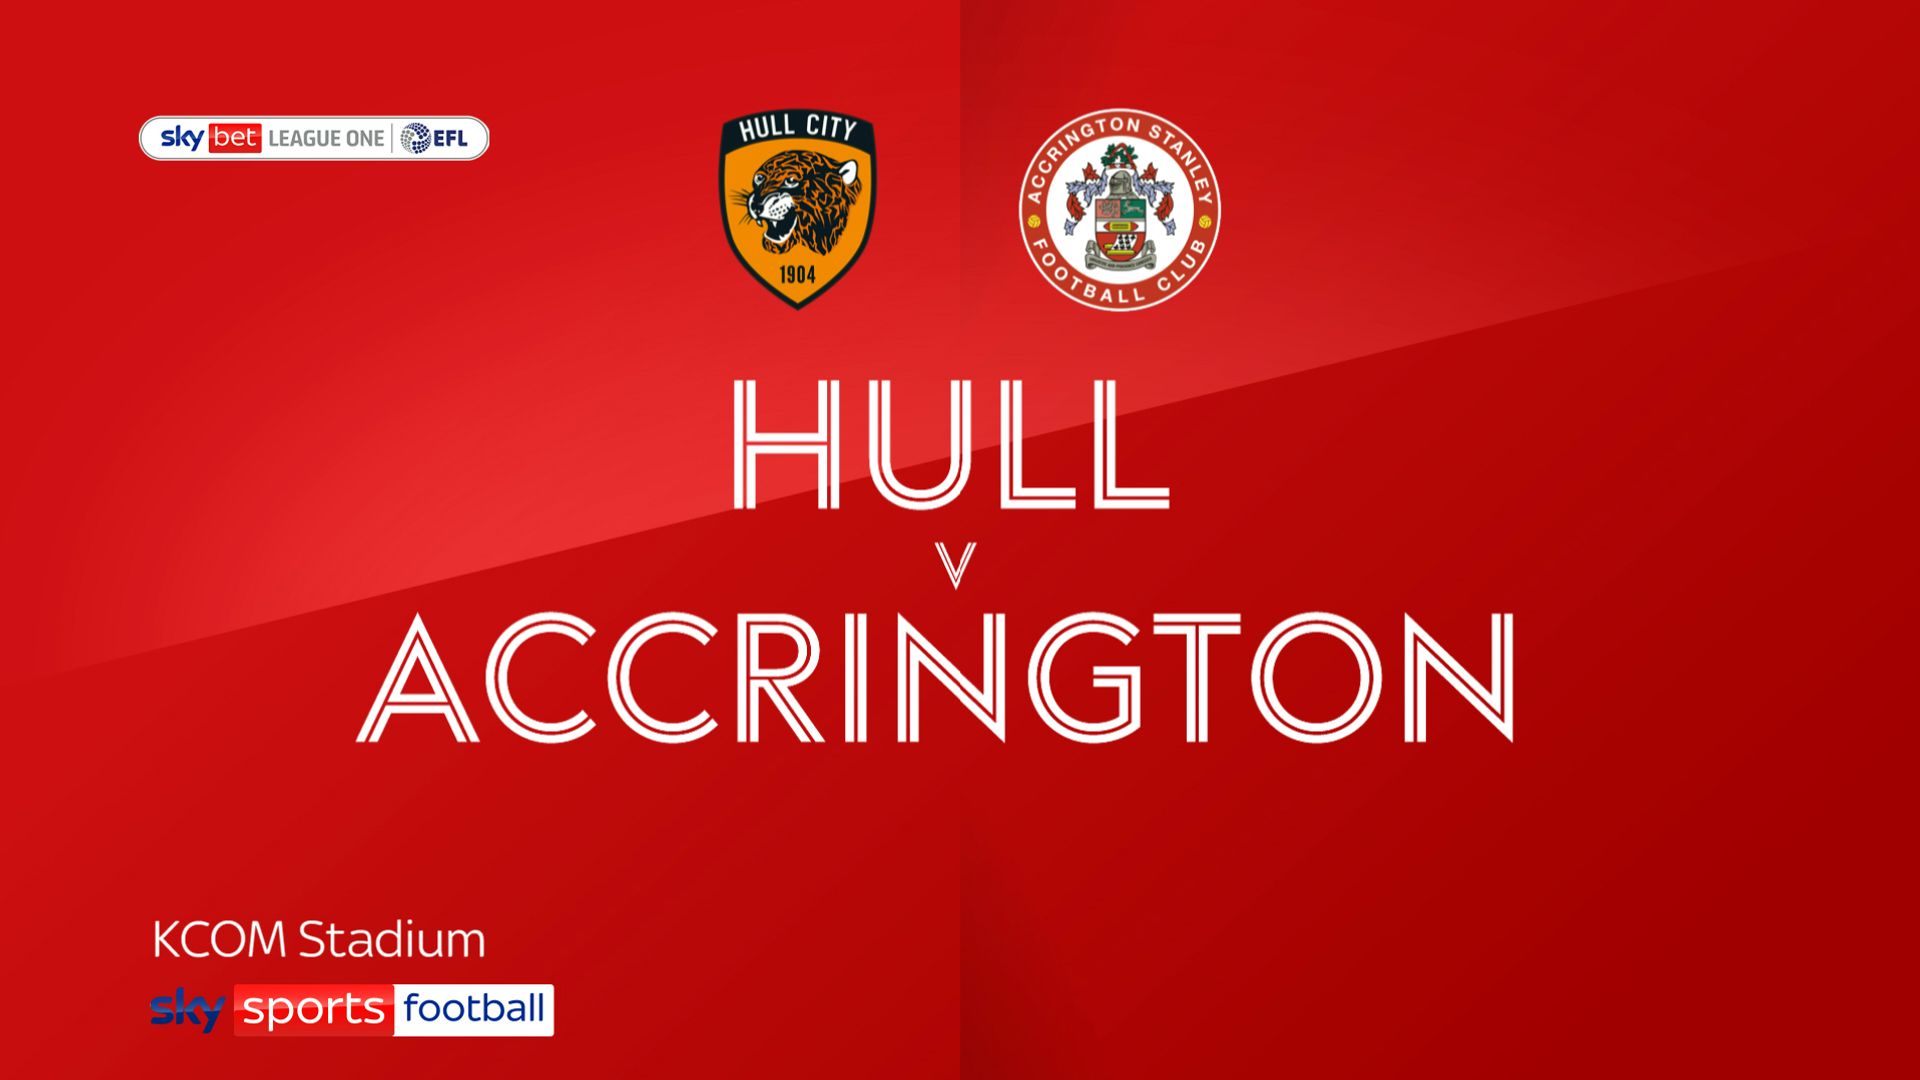 Hull ease past Accrington to go top of League One